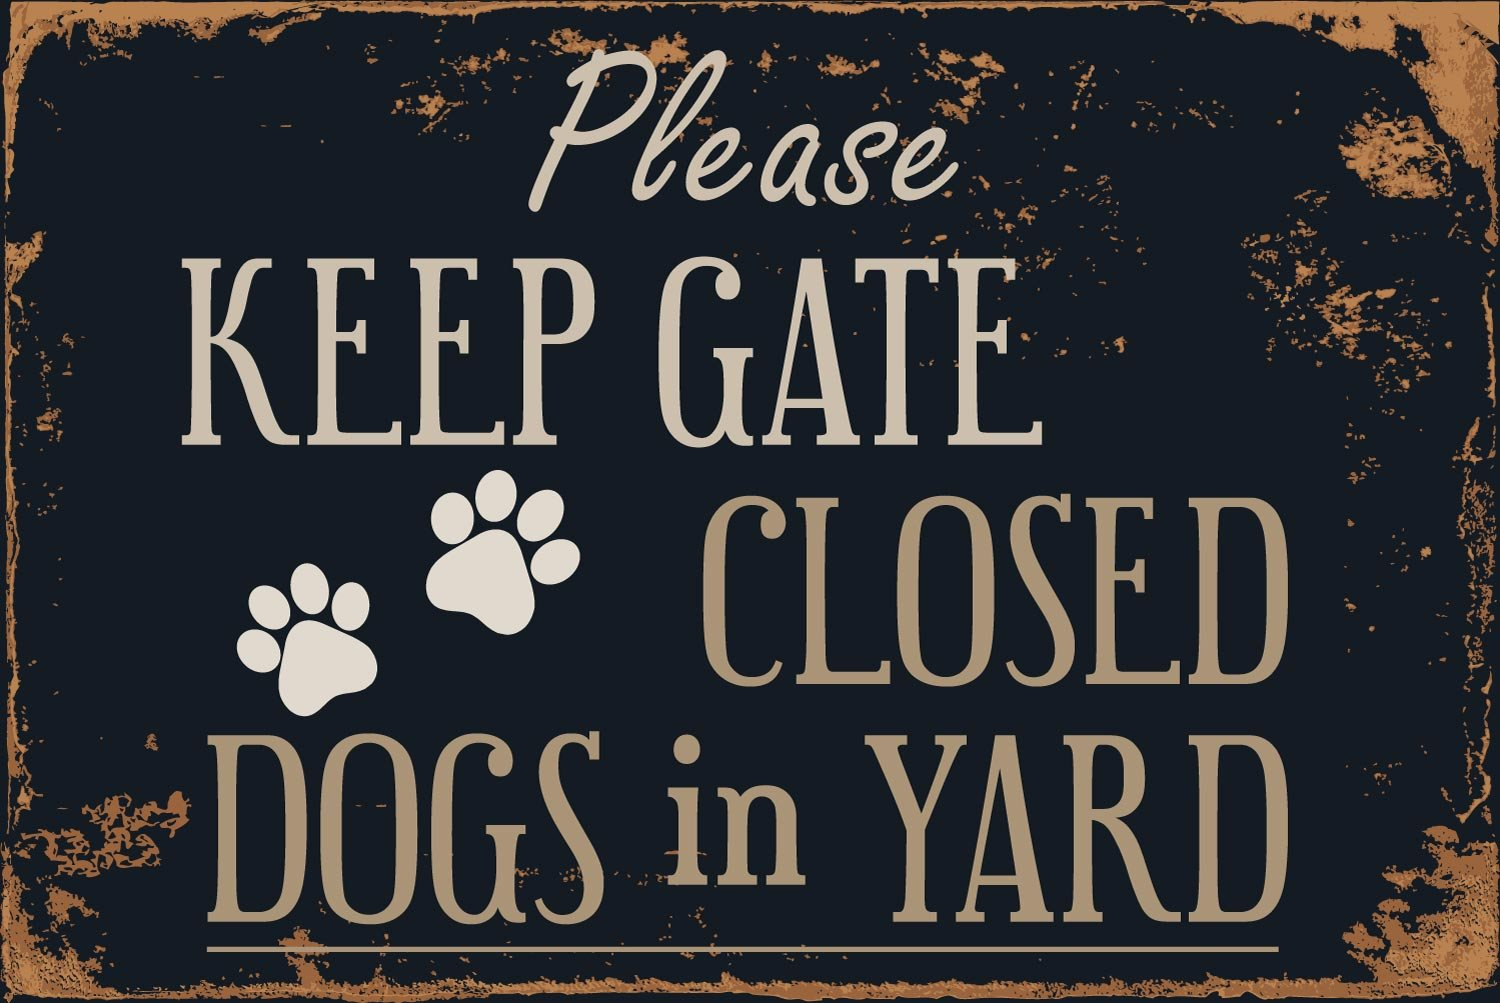 StickerPirate Please Keep Gate Closed Dogs in Yard 8 x 12 Vintage Aluminum Retro Metal Sign VS505